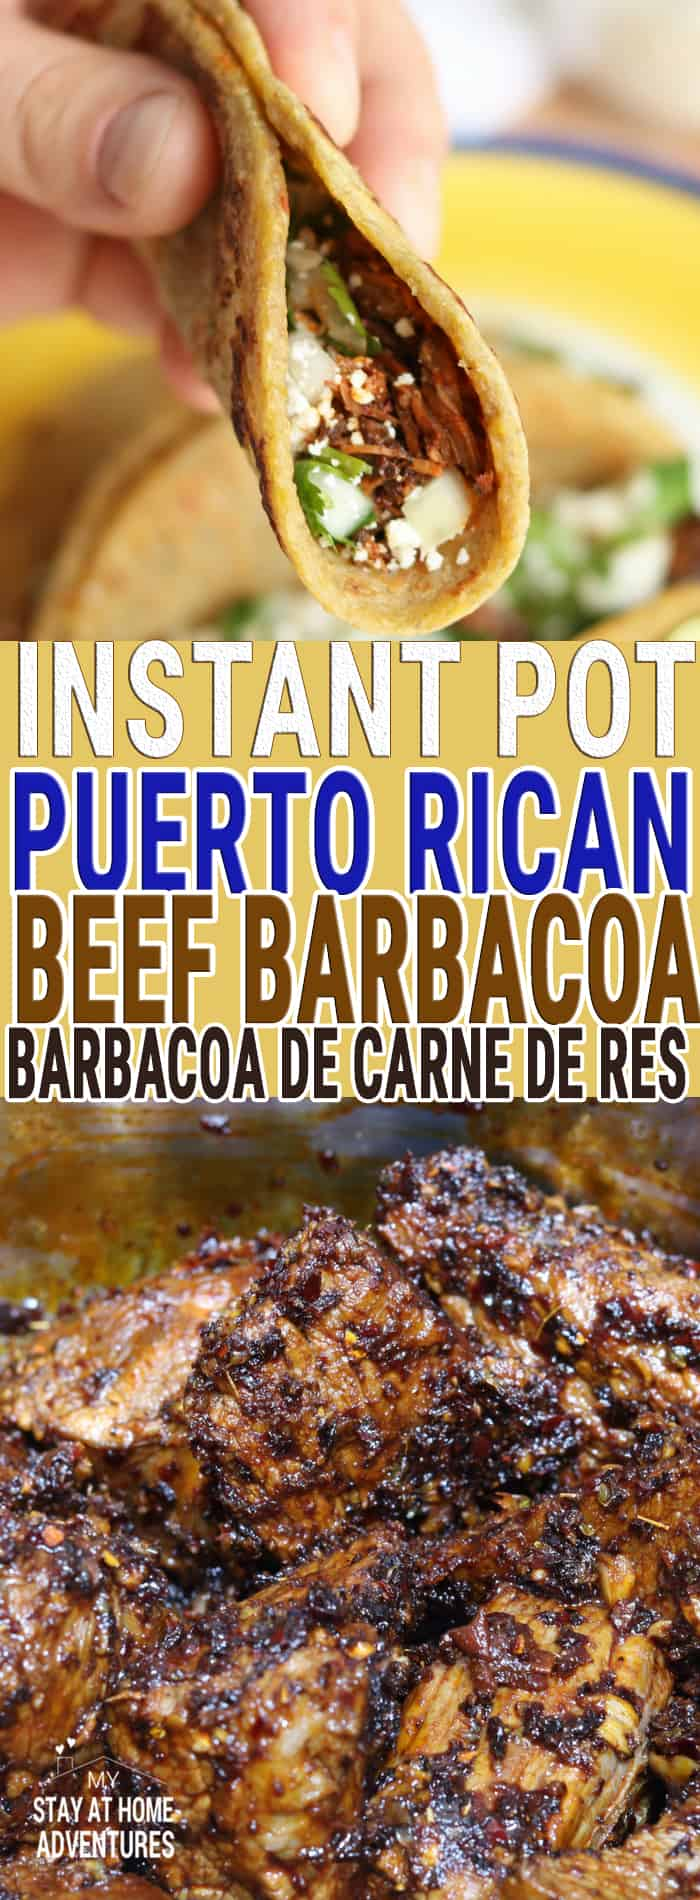 Flavorful and delicious! IThis inspired Puerto Rican style beef barbacoa recipe is easy to make when you use an Instant Pot or electric pressure cooker.  via @mystayathome